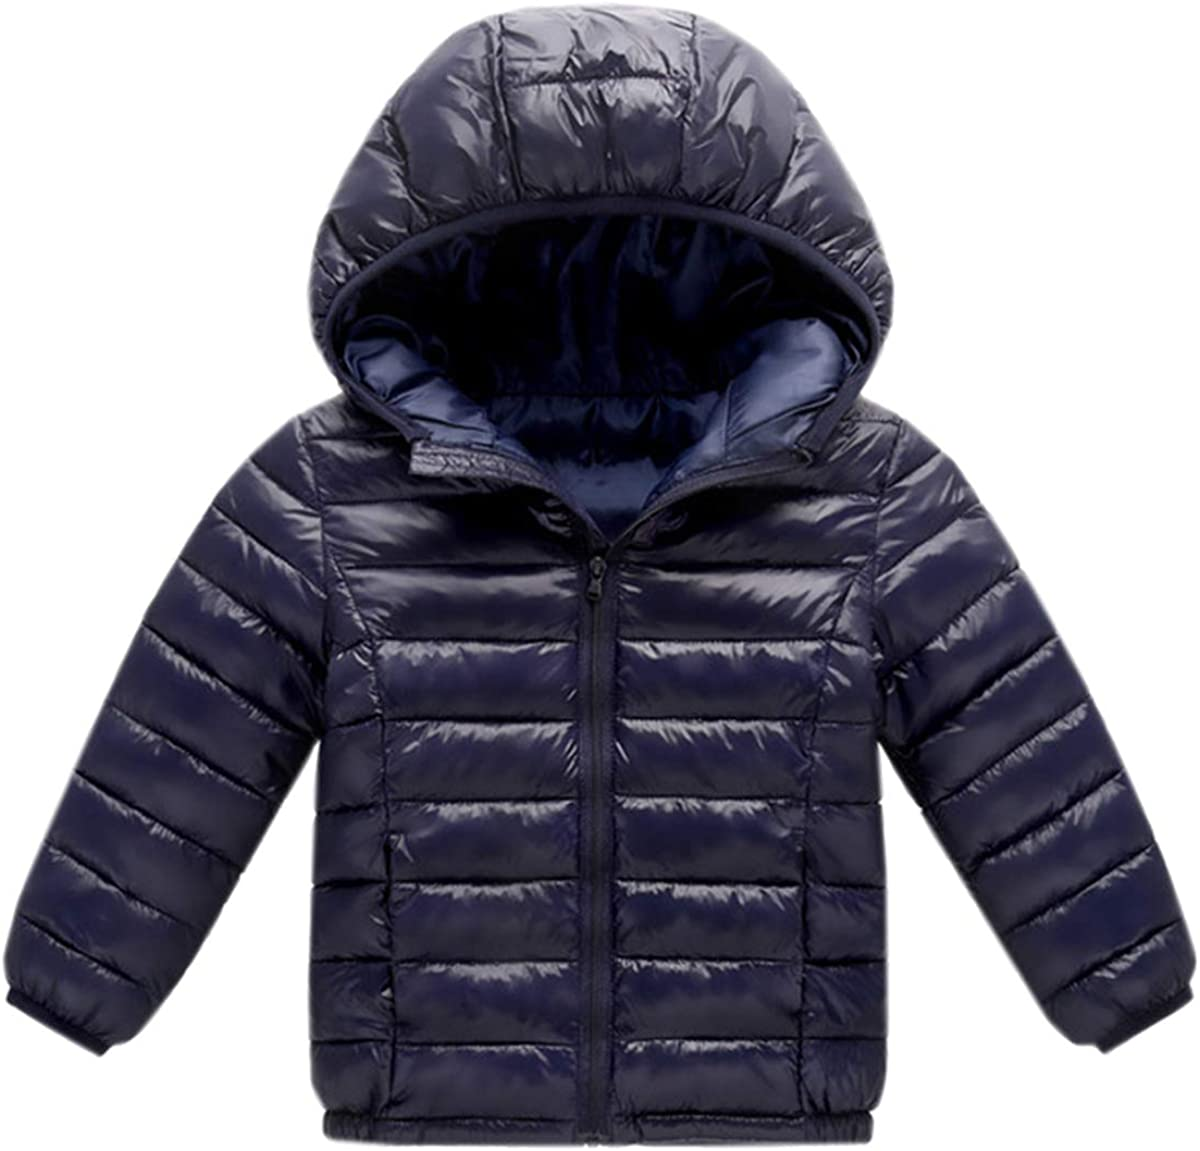 DAIMIDY Kids' Boys Girls Hooded Down Jacket, 18 Months - 11 Years